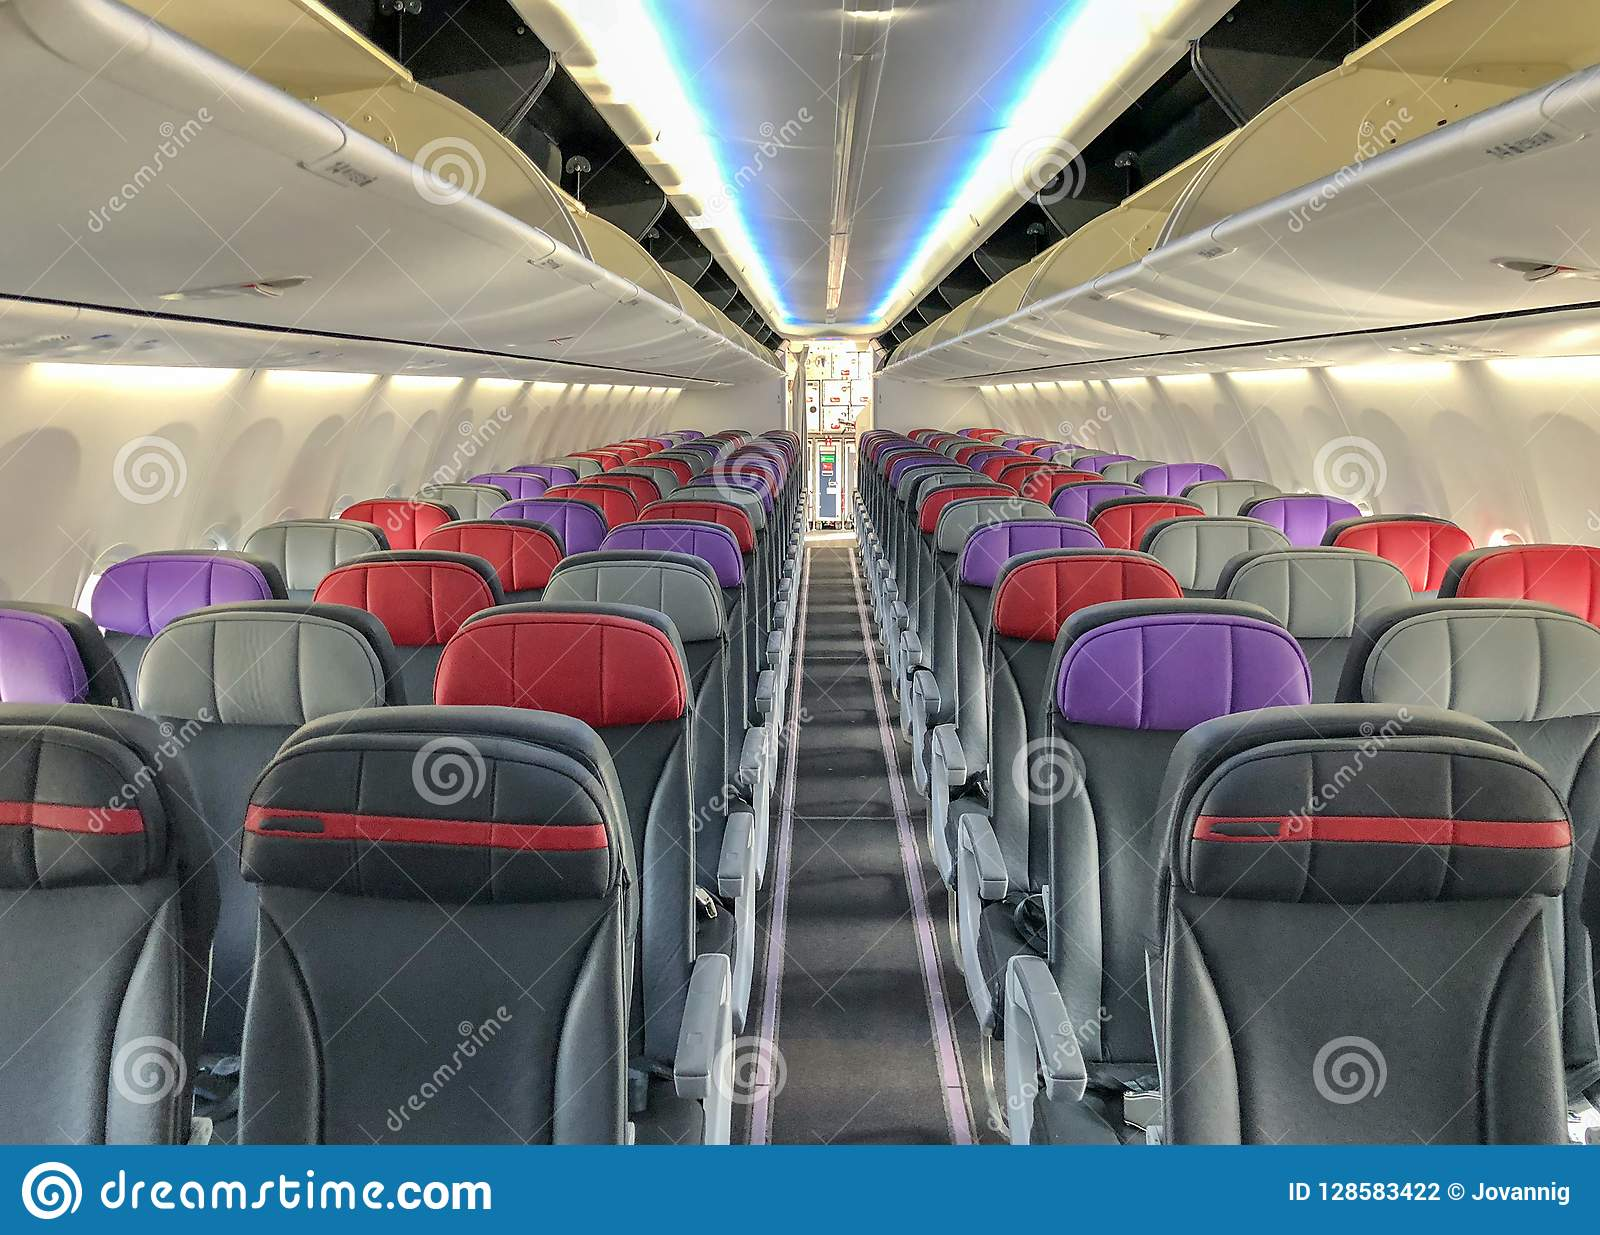 Empty airplane with seats and windows